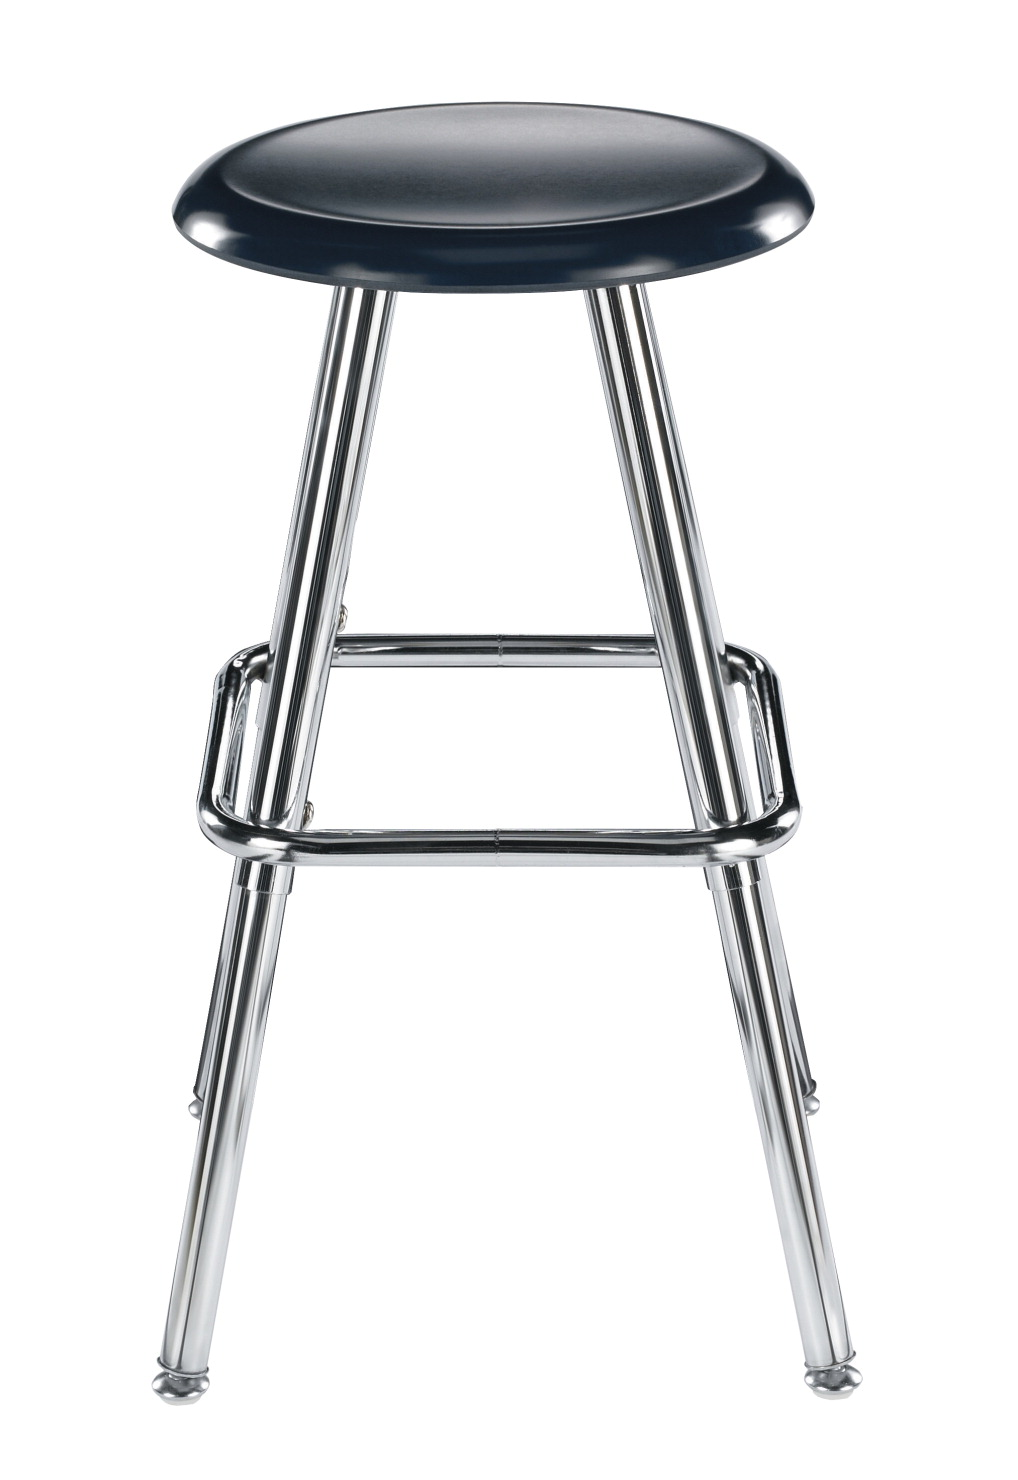 Lab Art Stool Frey Scientific Amp Cpo Science